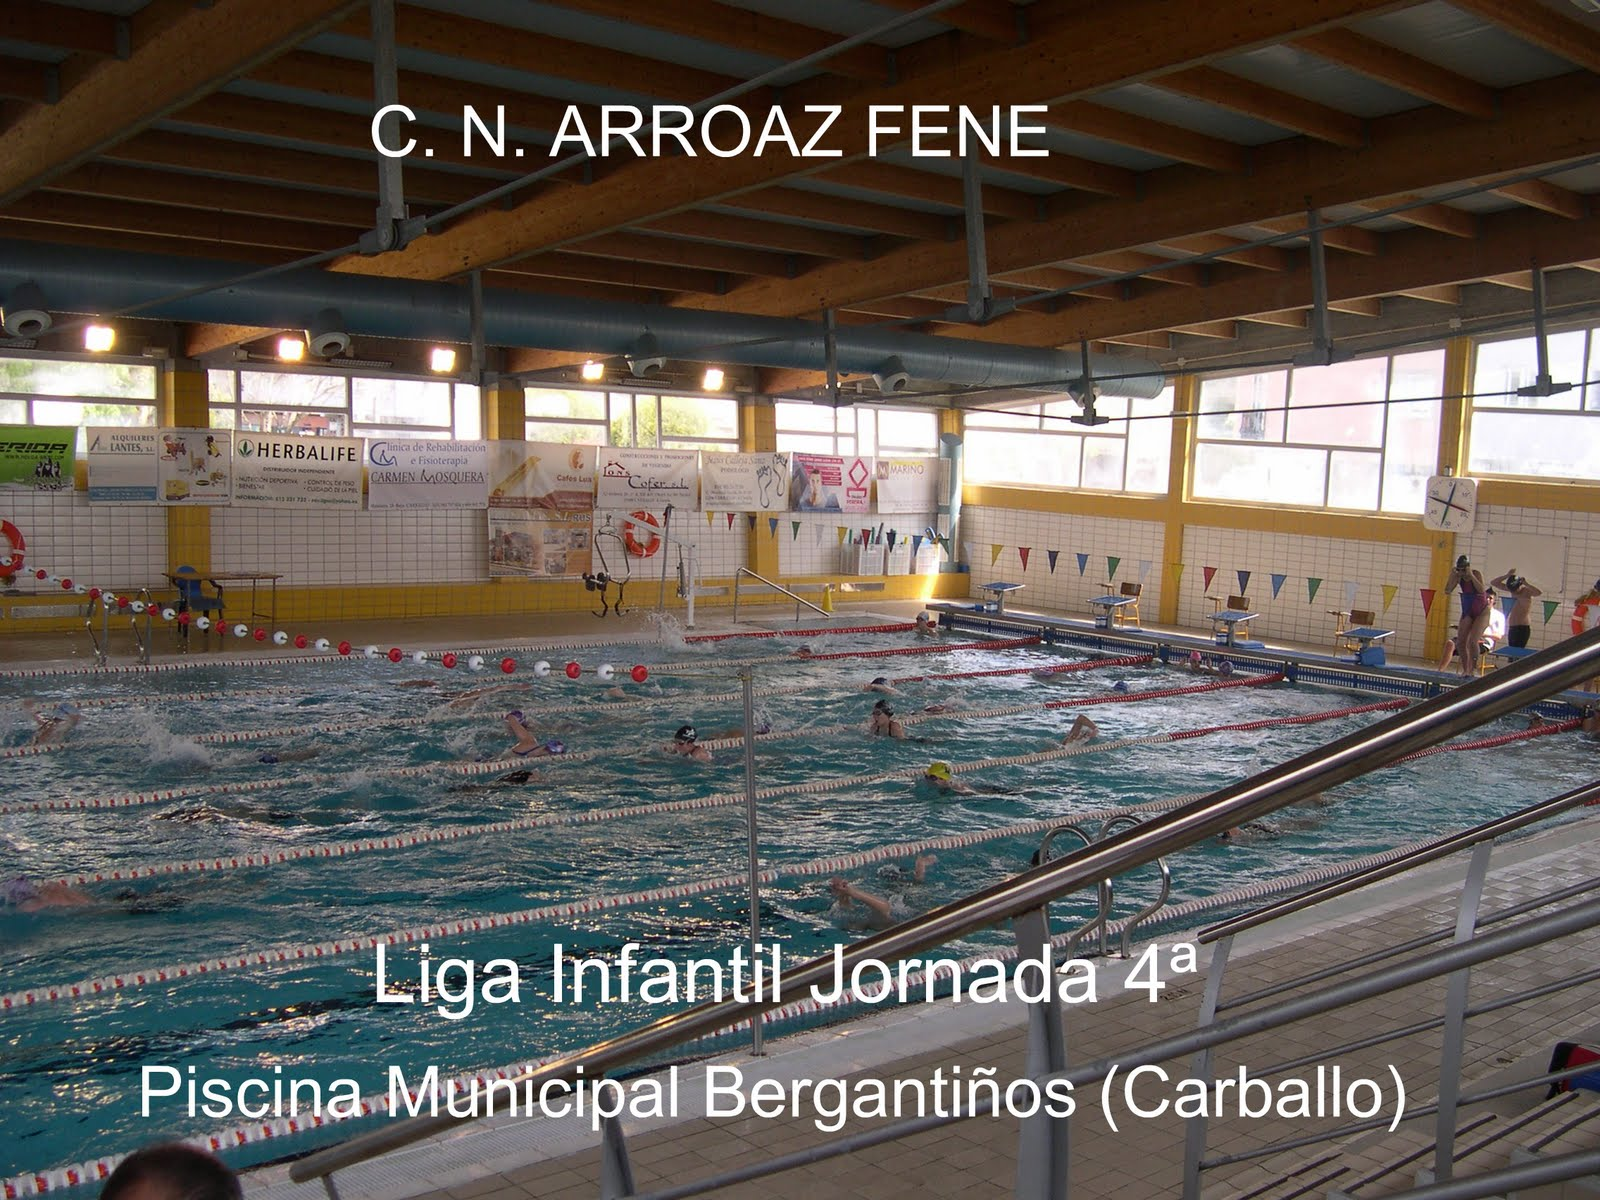 Club nataci n arroaz fene liga infantil jornada 4 for Piscina carballo